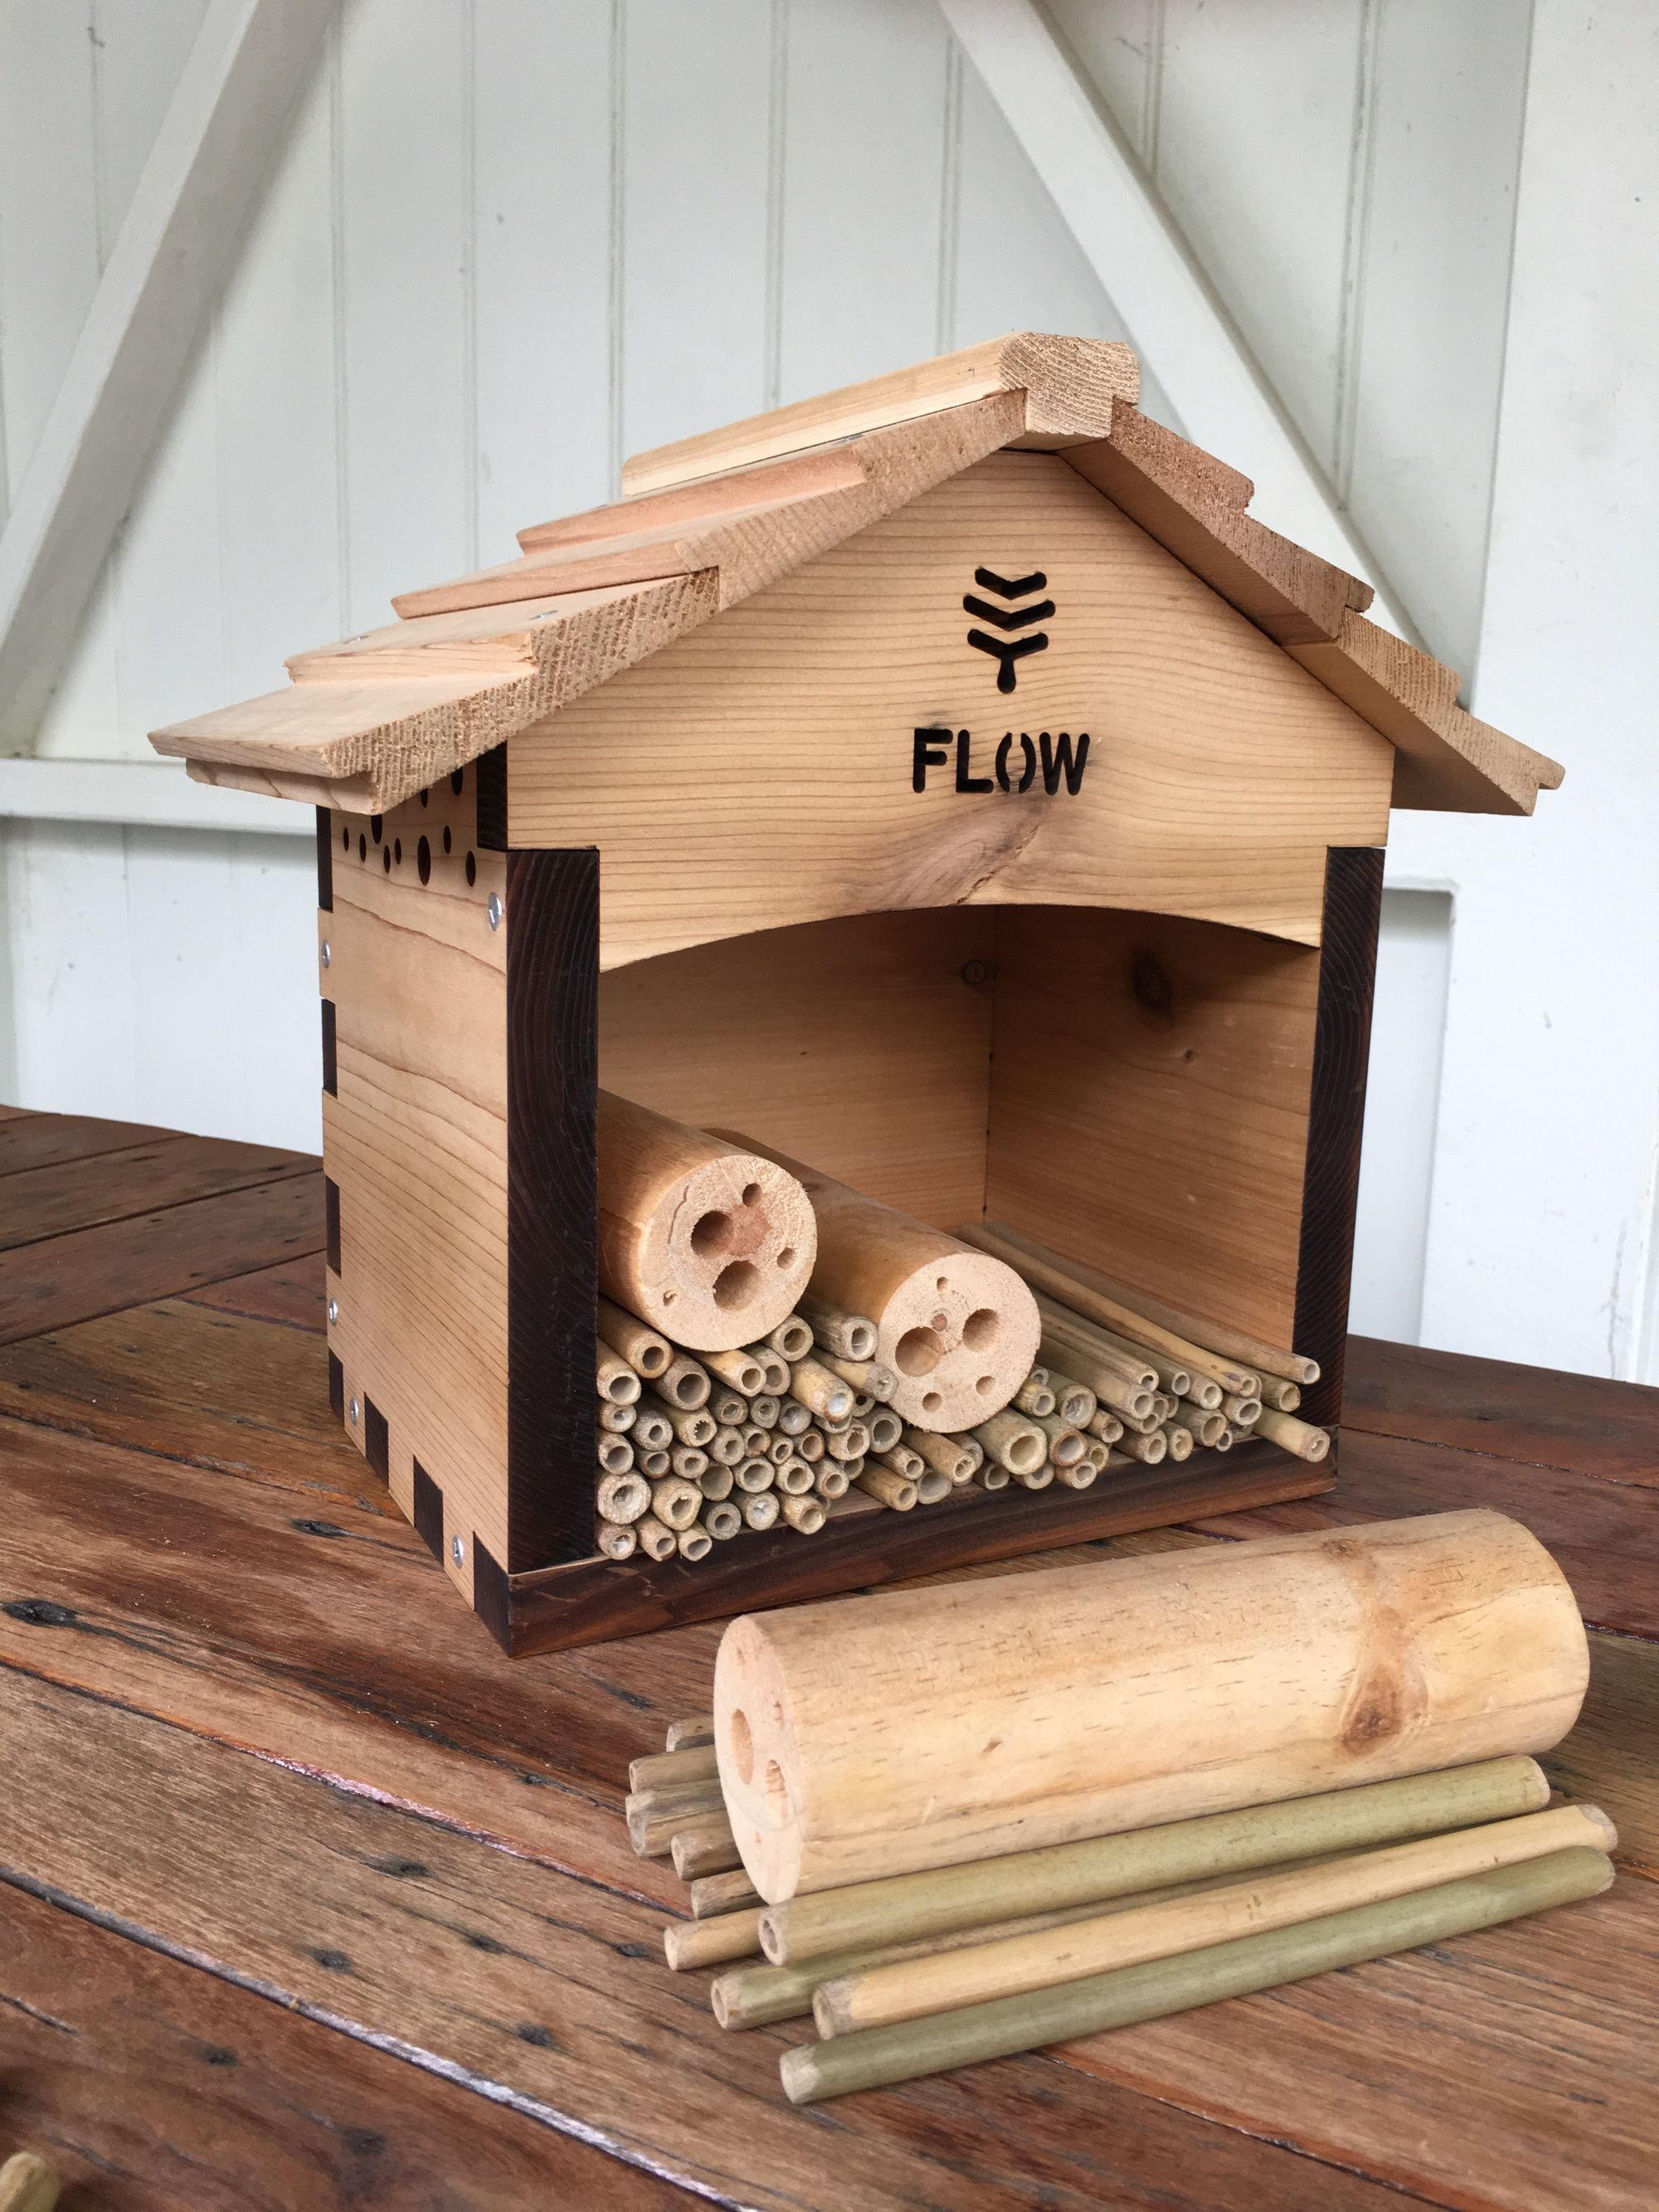 Construction, position & maintenance of the pollinator house